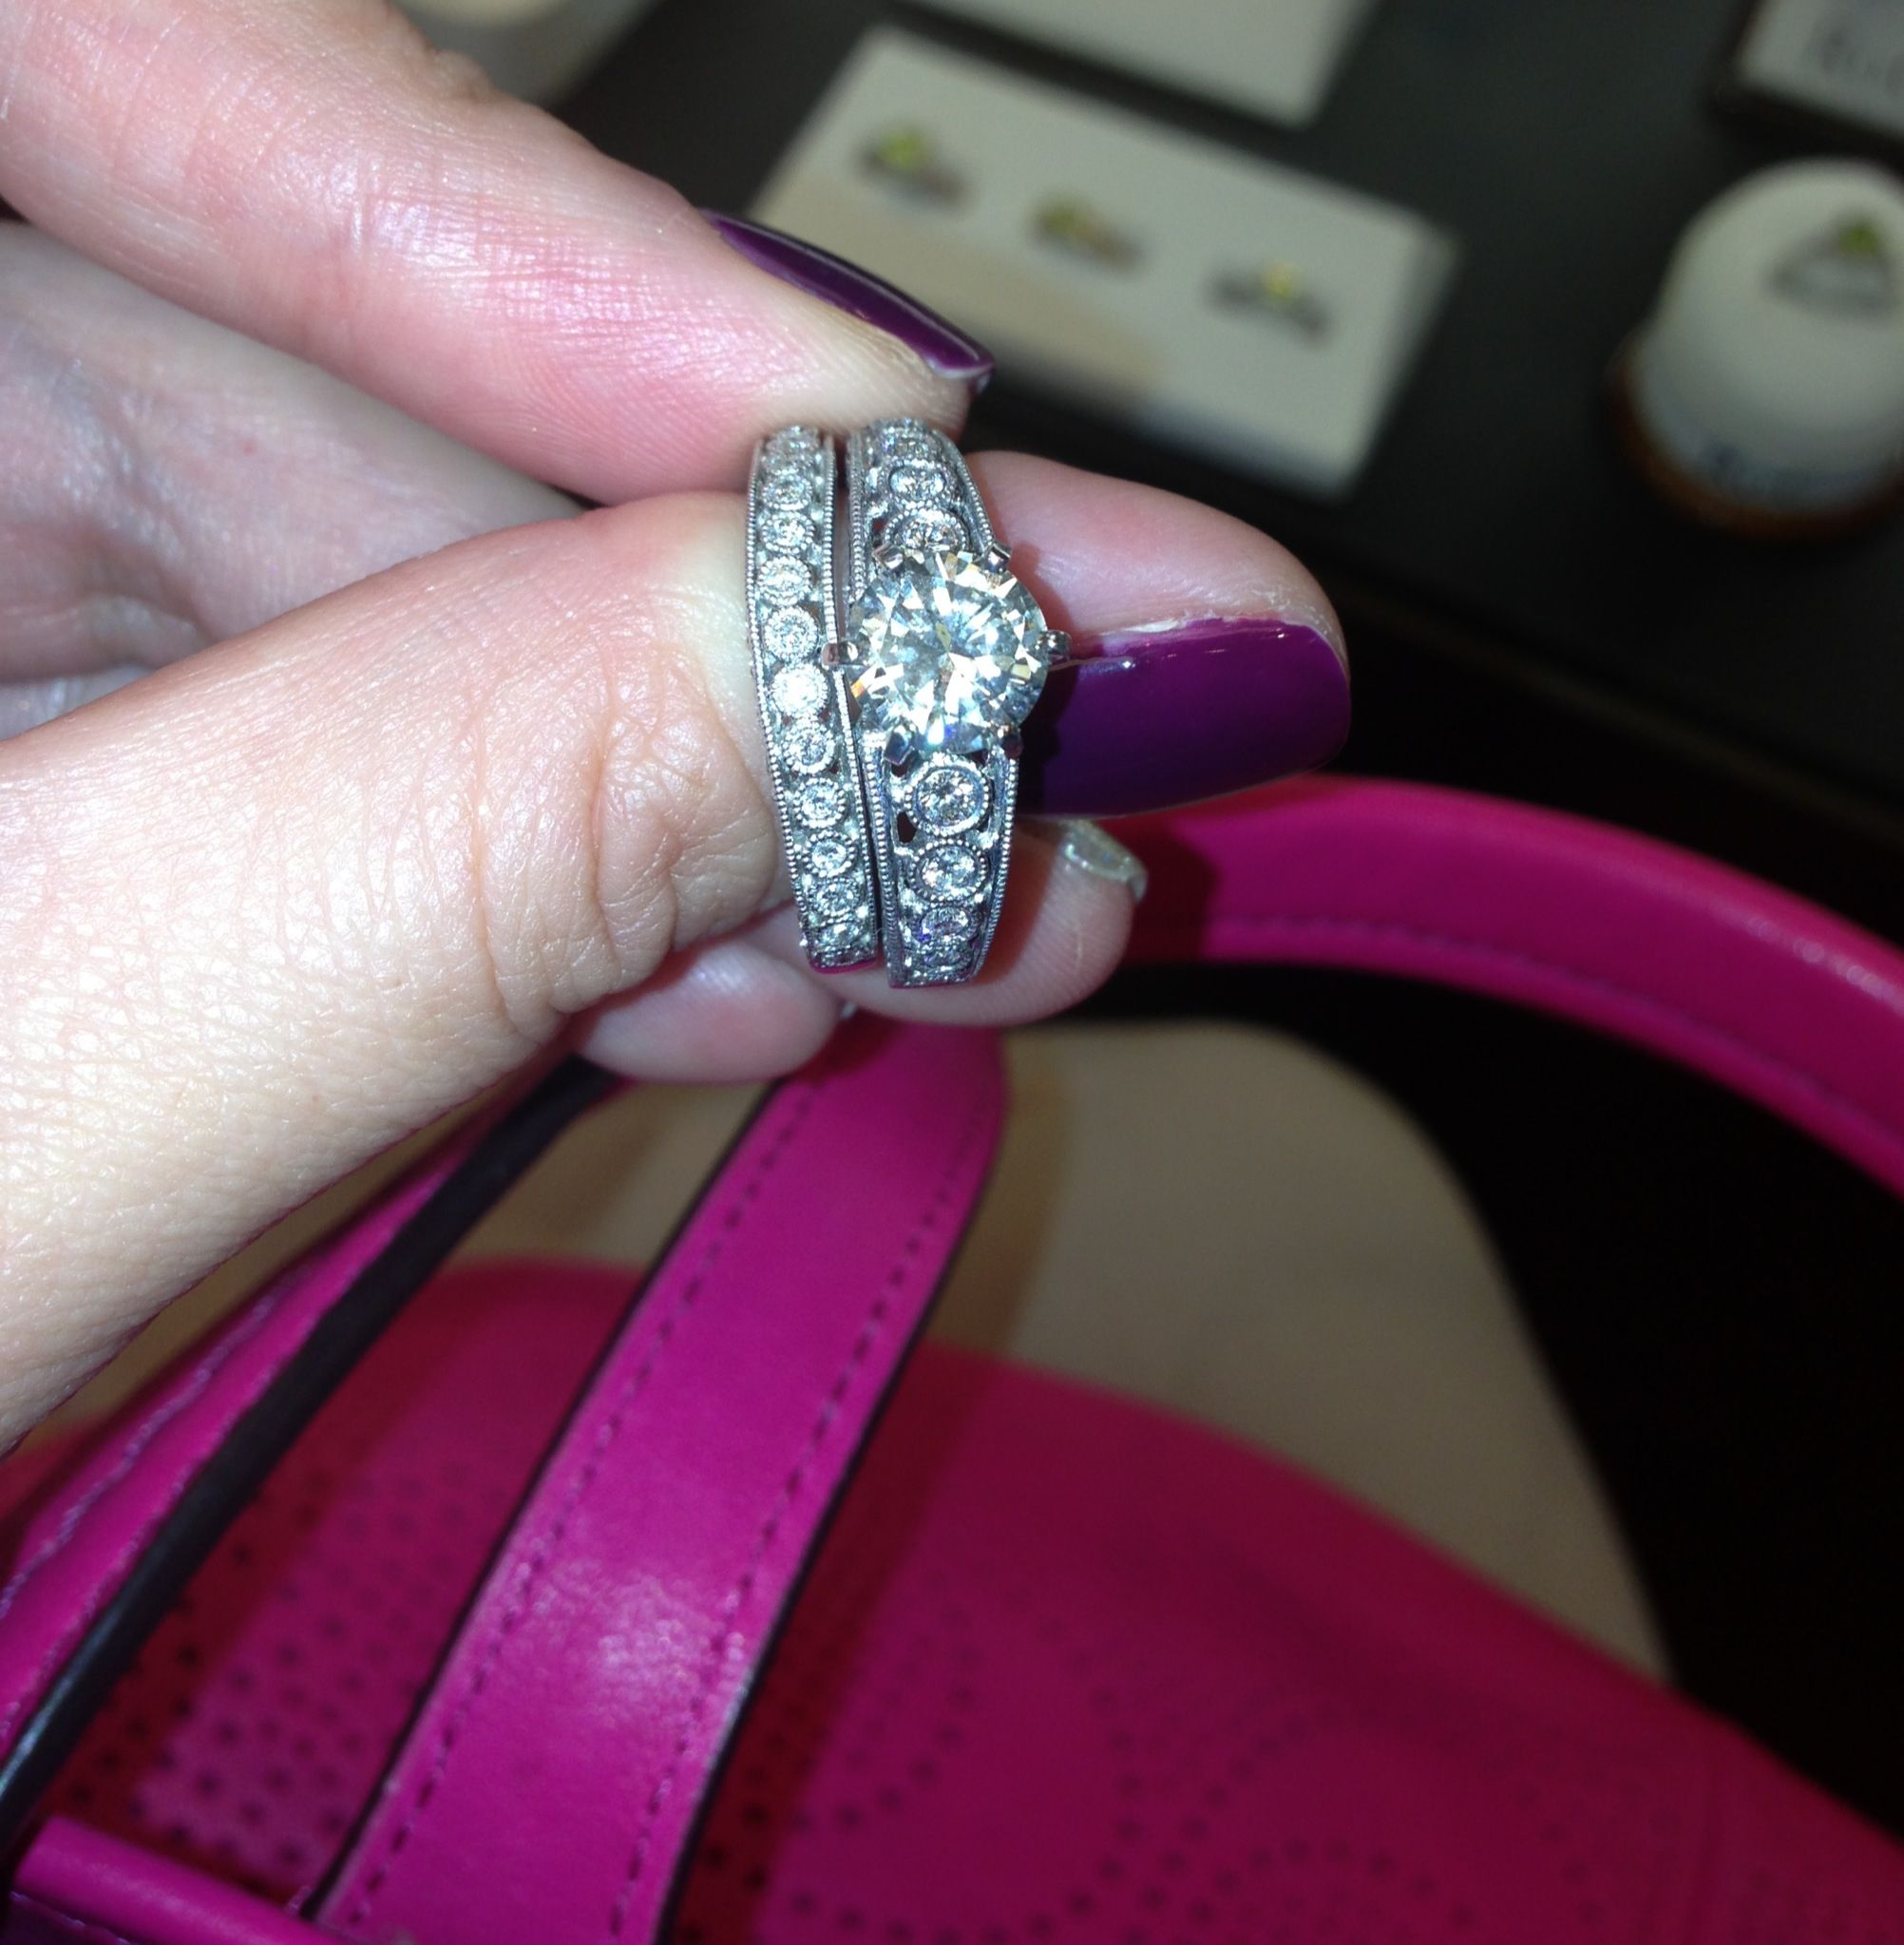 We went to go look at my wedding band today. Diamond on